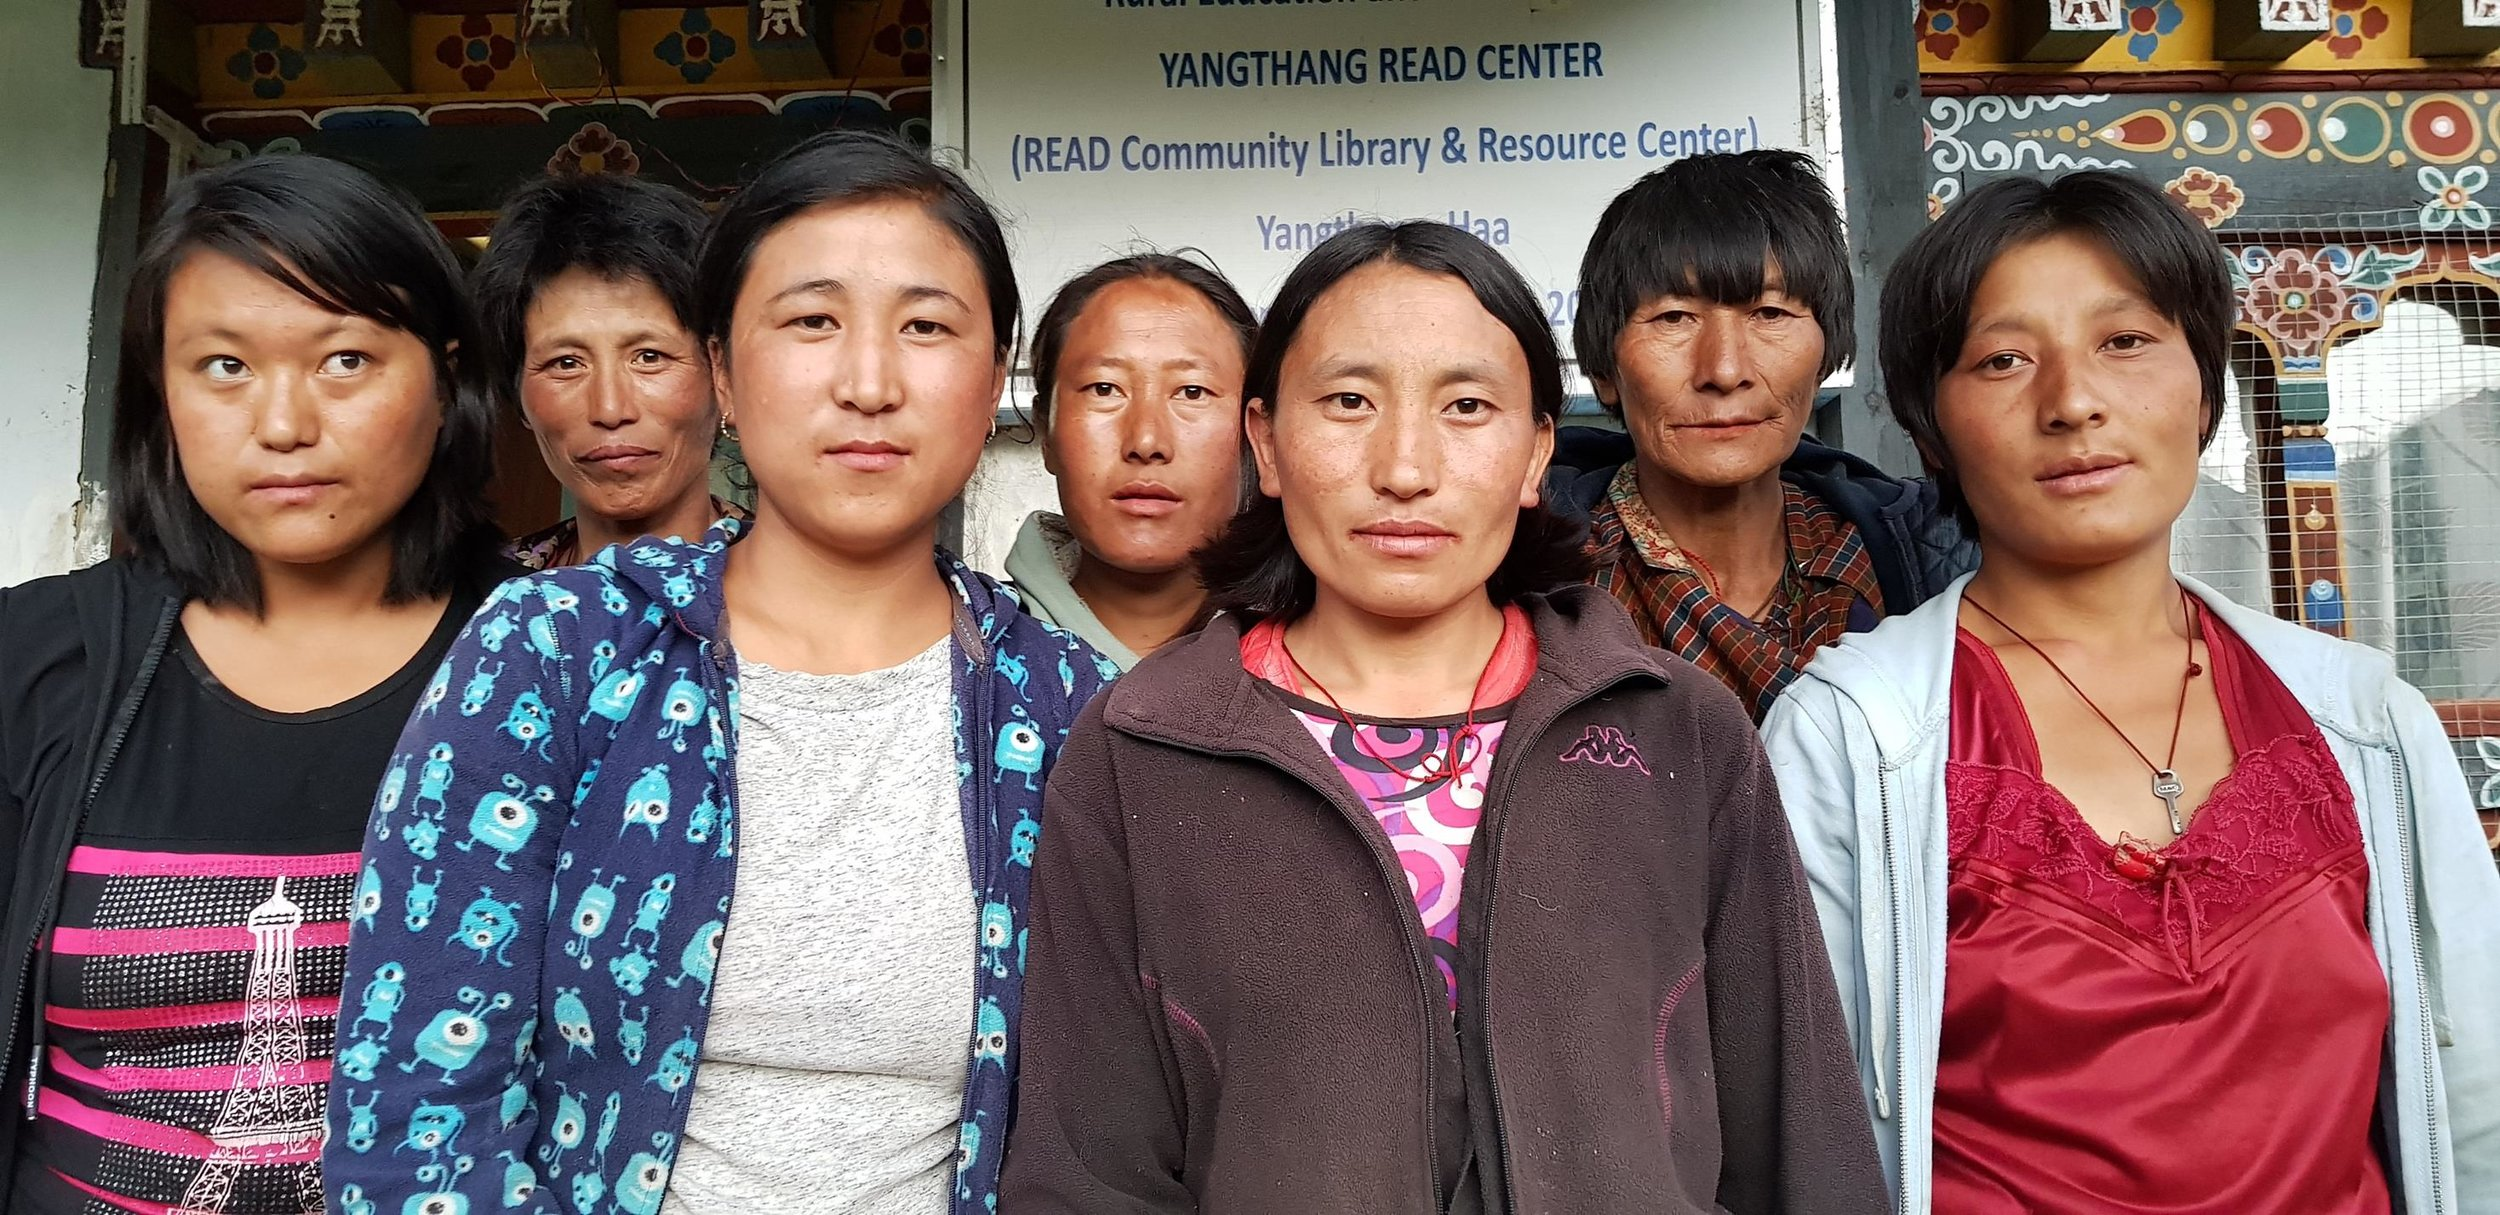 The Center Management Committee at the Yangthang READ Center, Bhutan